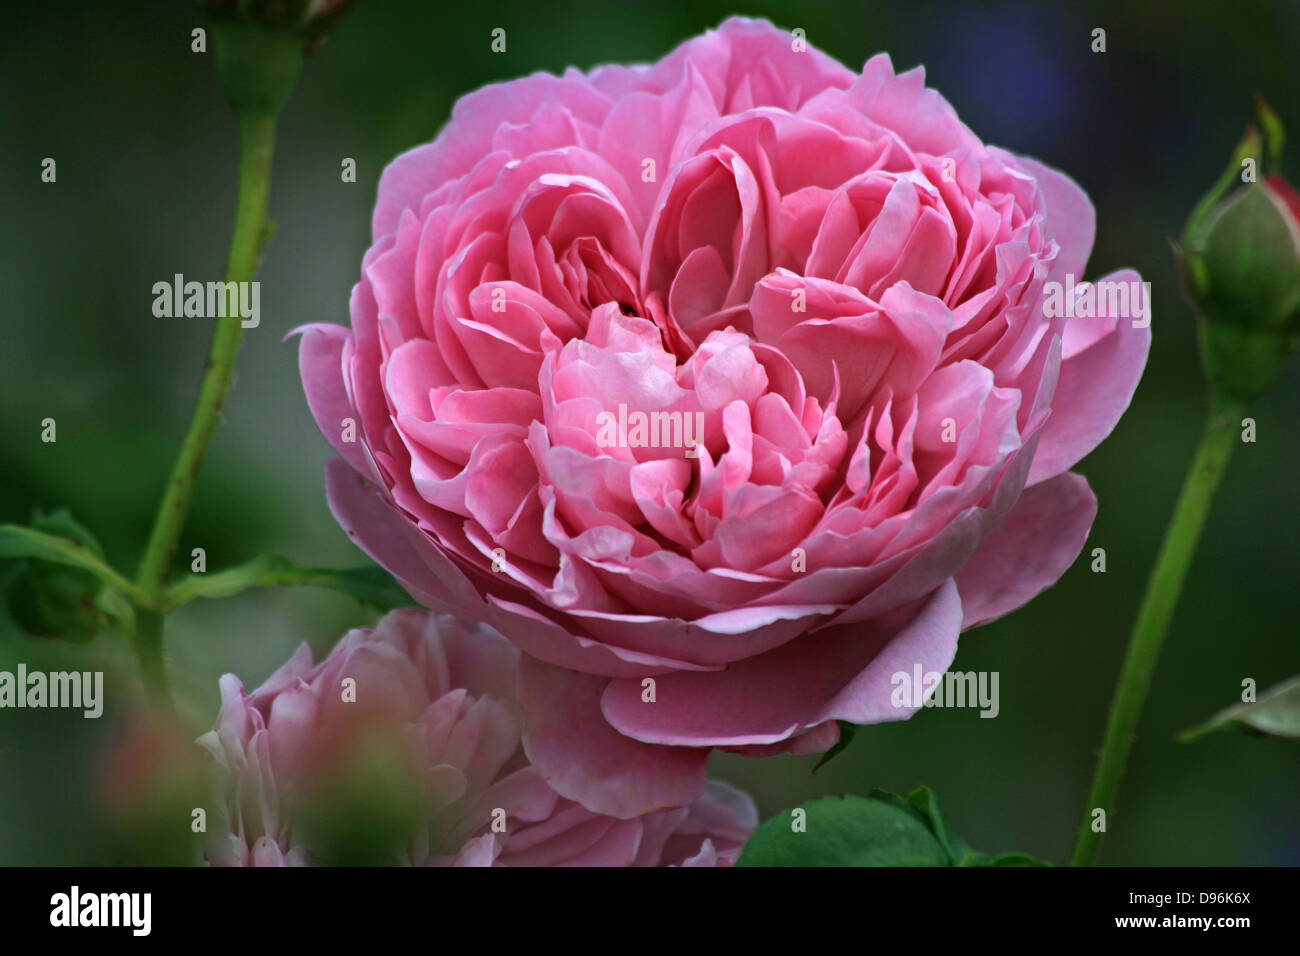 Pink Beauty Flower Single Rose: Double Rose Stock Photos & Double Rose Stock Images